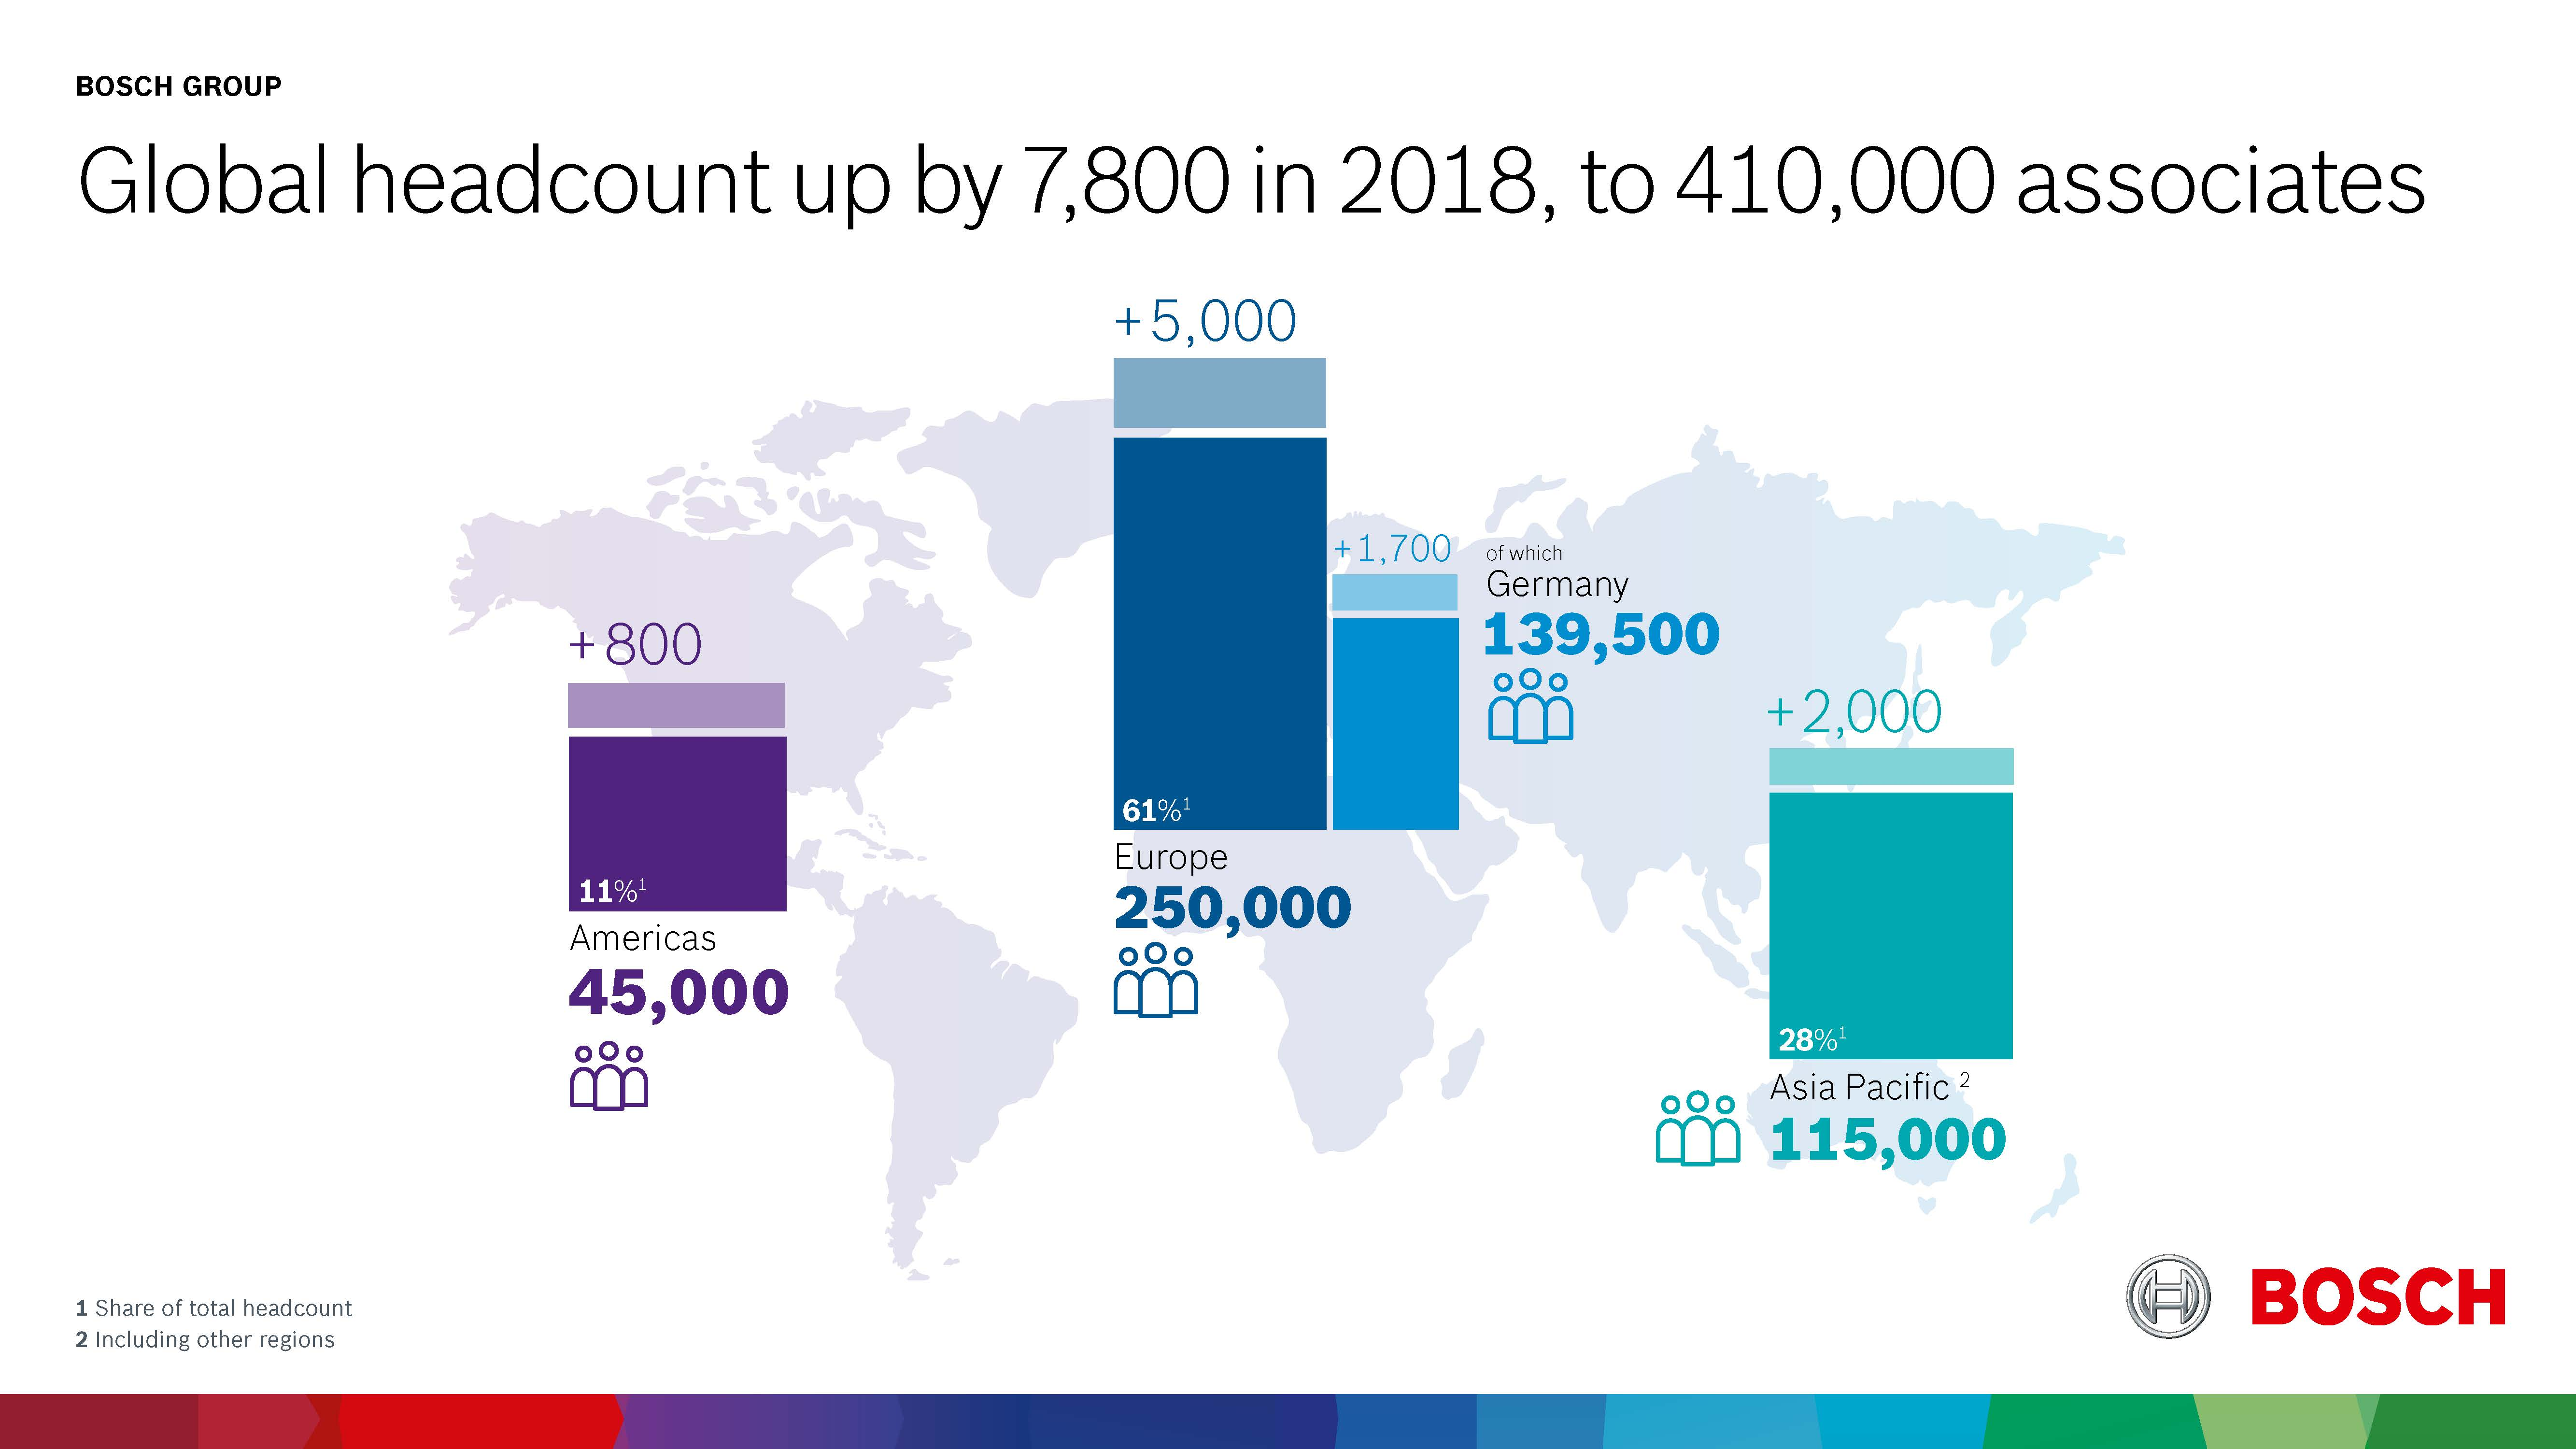 Global headcount up by 7,800 in 2018, to 410,000 associates